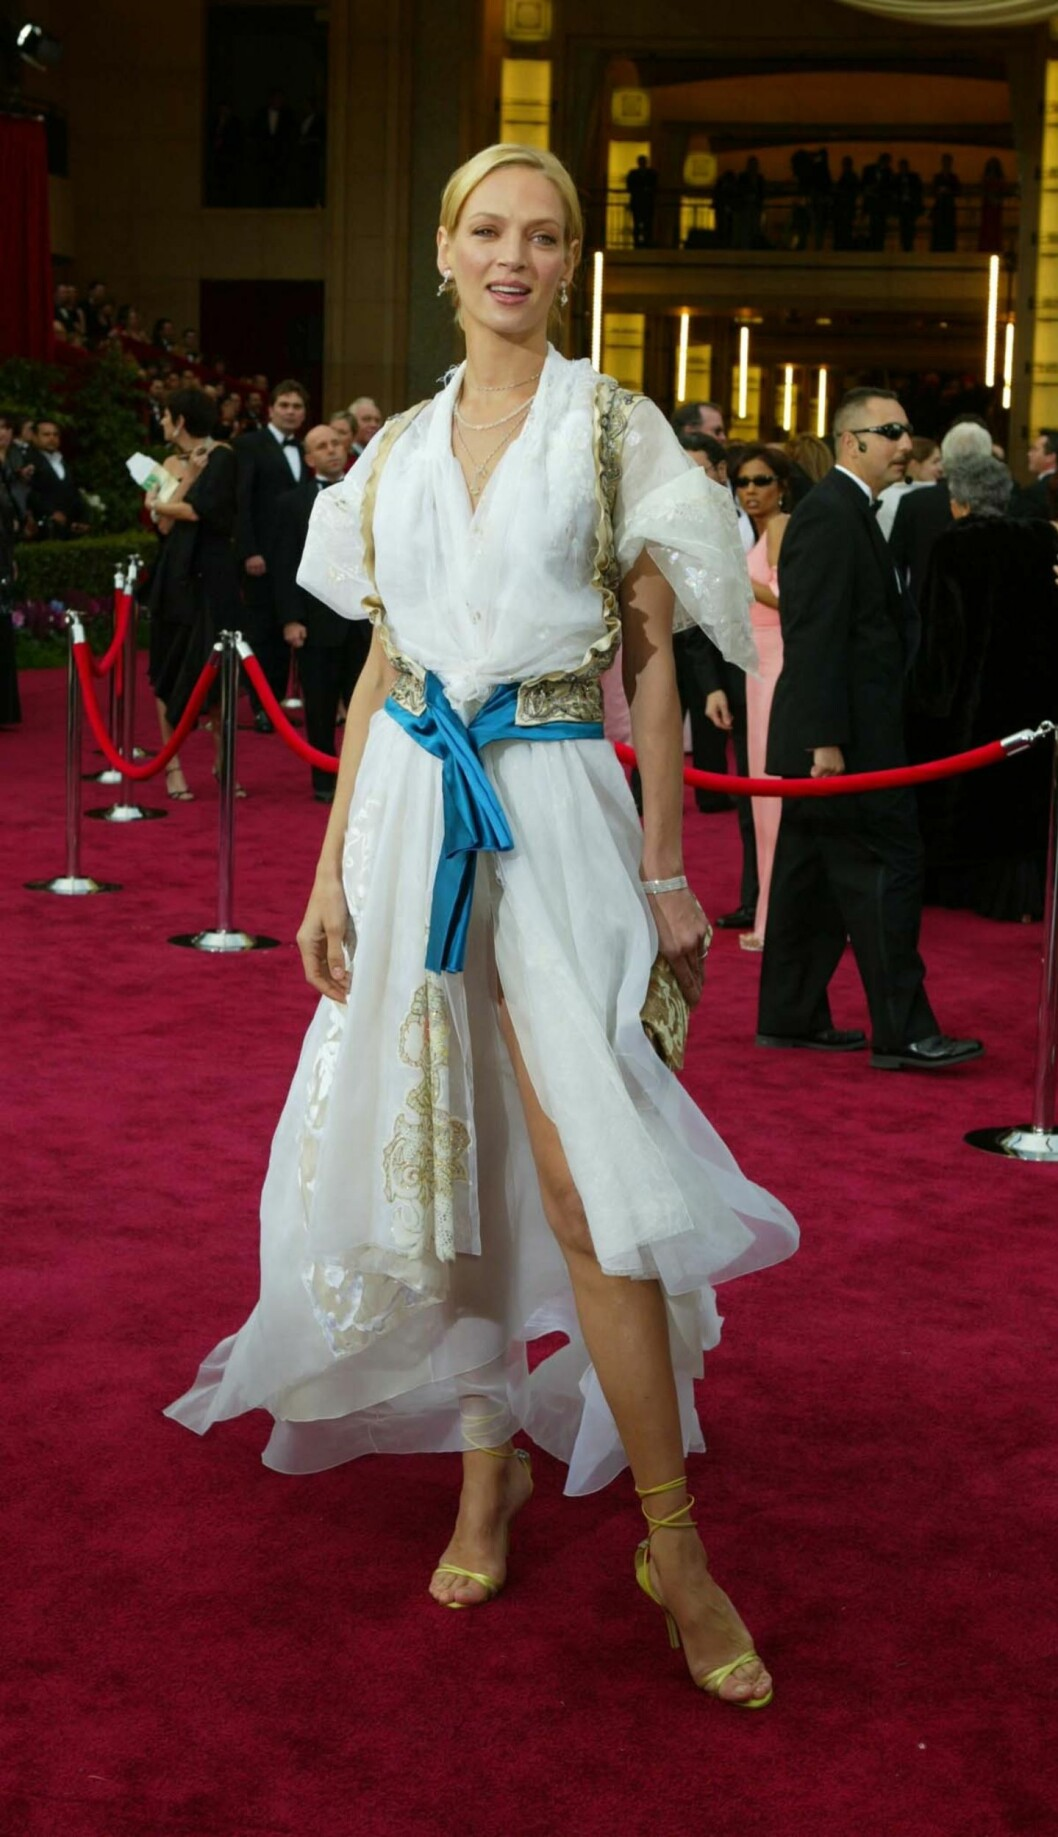 "Celebrities arrive at the 76th Annual Academy Awards® that was held at the Kodak Theatre in Hollywood on Sunday, February 29, 2004 Shown here is Uma Thurman  Pictures by Russell Einhorn                  Ref: RE 290204 A   The Oscar statuette is the copyrighted property of the Academy of Motion Picture Arts and Sciences, and the statuette and the phrases ""Academy Award(s)"" and ""Oscar"" are registered trademarks under the laws of the United States and other countries. All published representations of the Award of Merit statuette, including photographs, drawings and other likenesses, must include the legend ©A.M.P.A.S.® to provide notice of copyright, trademark and service mark registration.   Los Angeles:	310-821-2666 New York:	212-619-2666 London:	207-107-2666 photodesk@splashnews.com Foto: Russell Einhorn  / Splash News/ All Over Press"